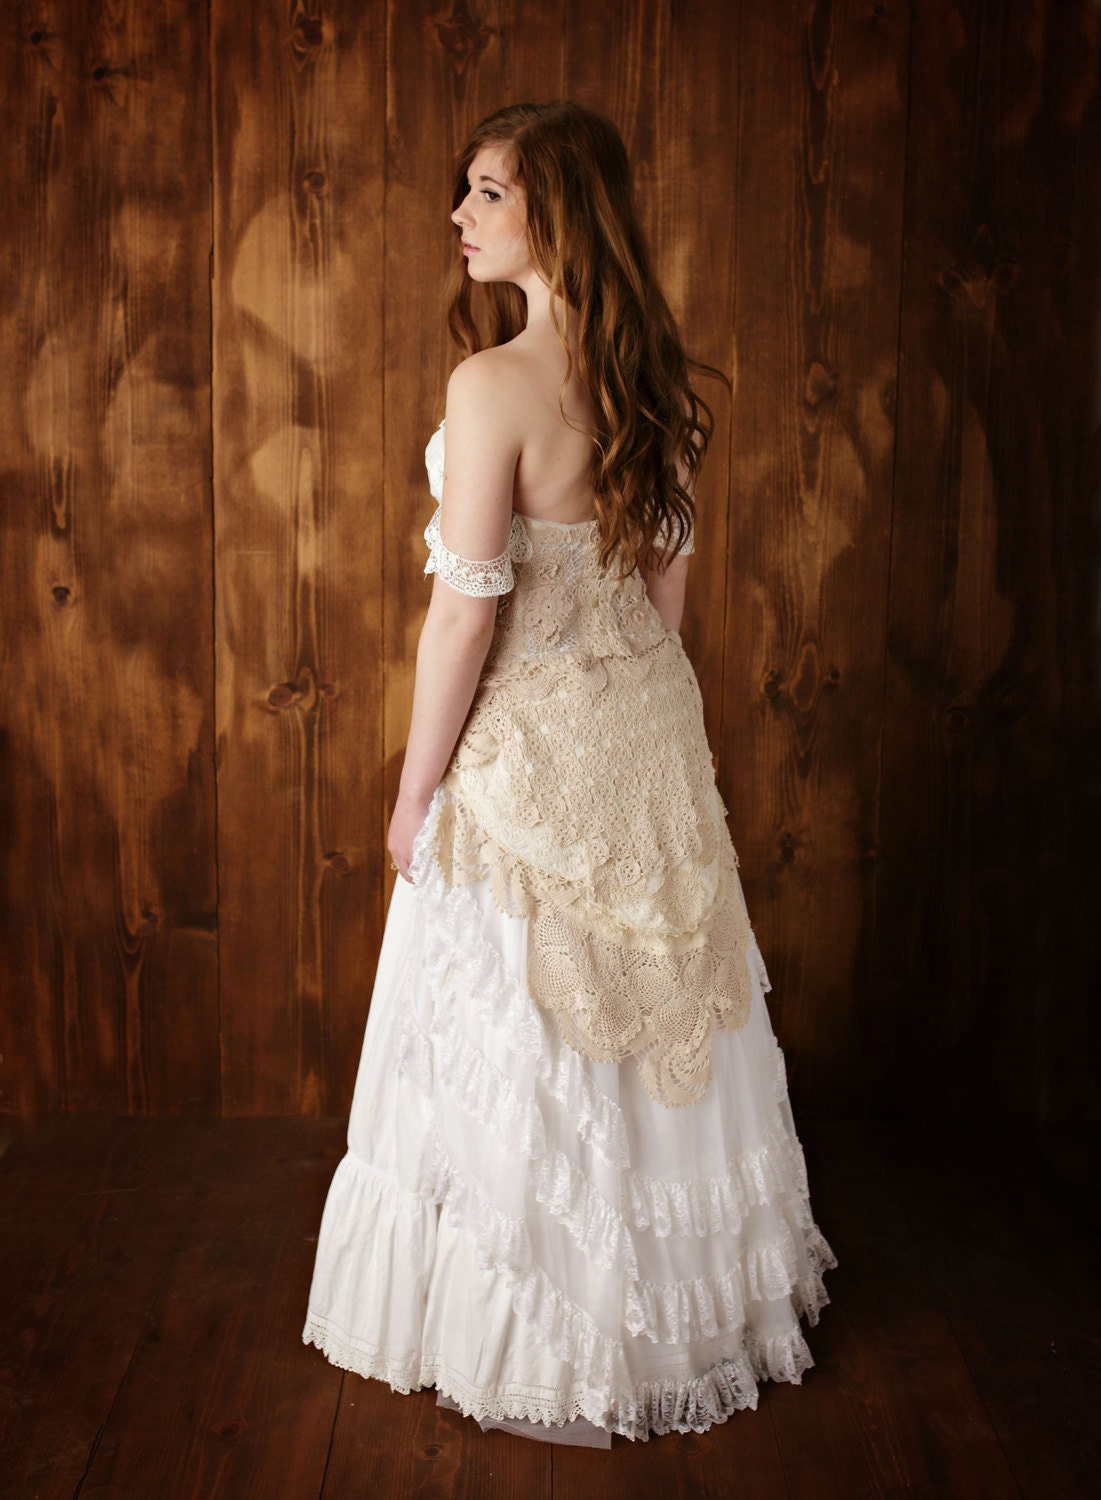 Vintage lace wedding gown rustic romance wedding gown for Romantic vintage lace wedding dresses